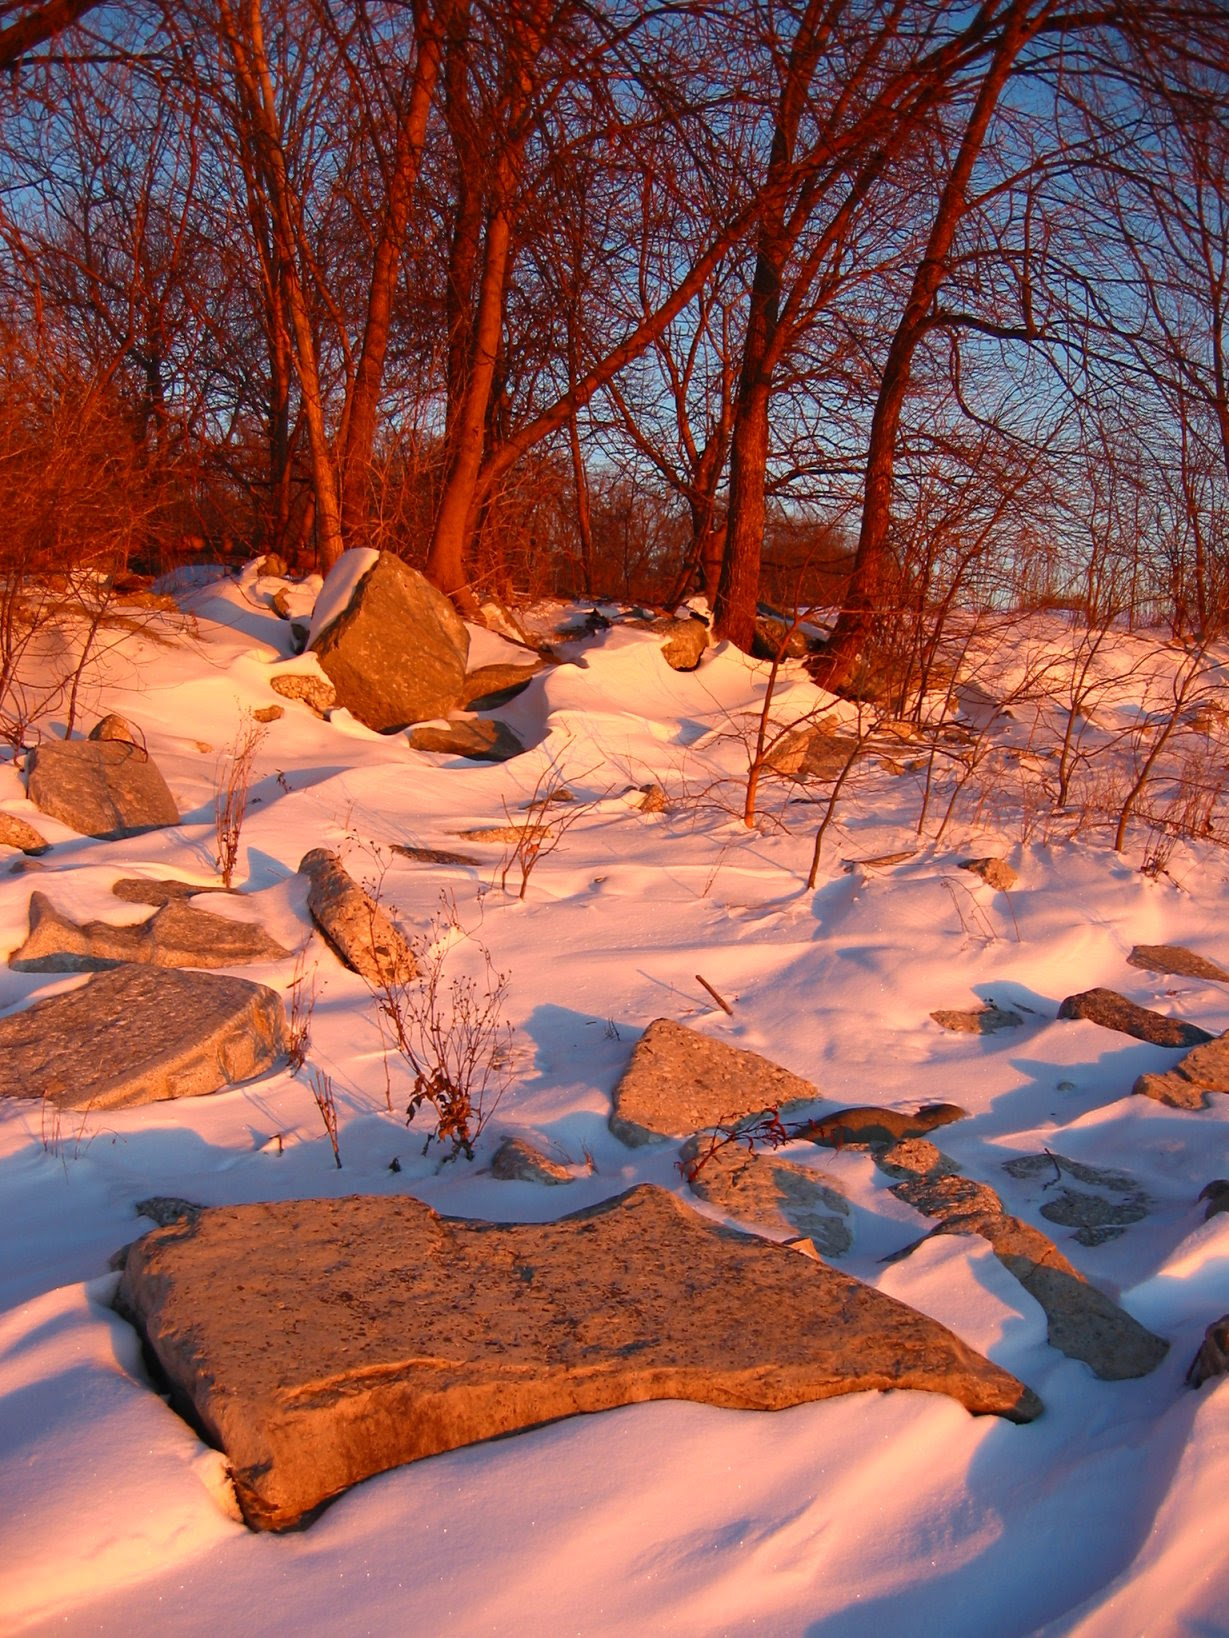 Rocks and Trees during cold Lake Michigan Sunrise - 12-06-2007 - soul-amp.com